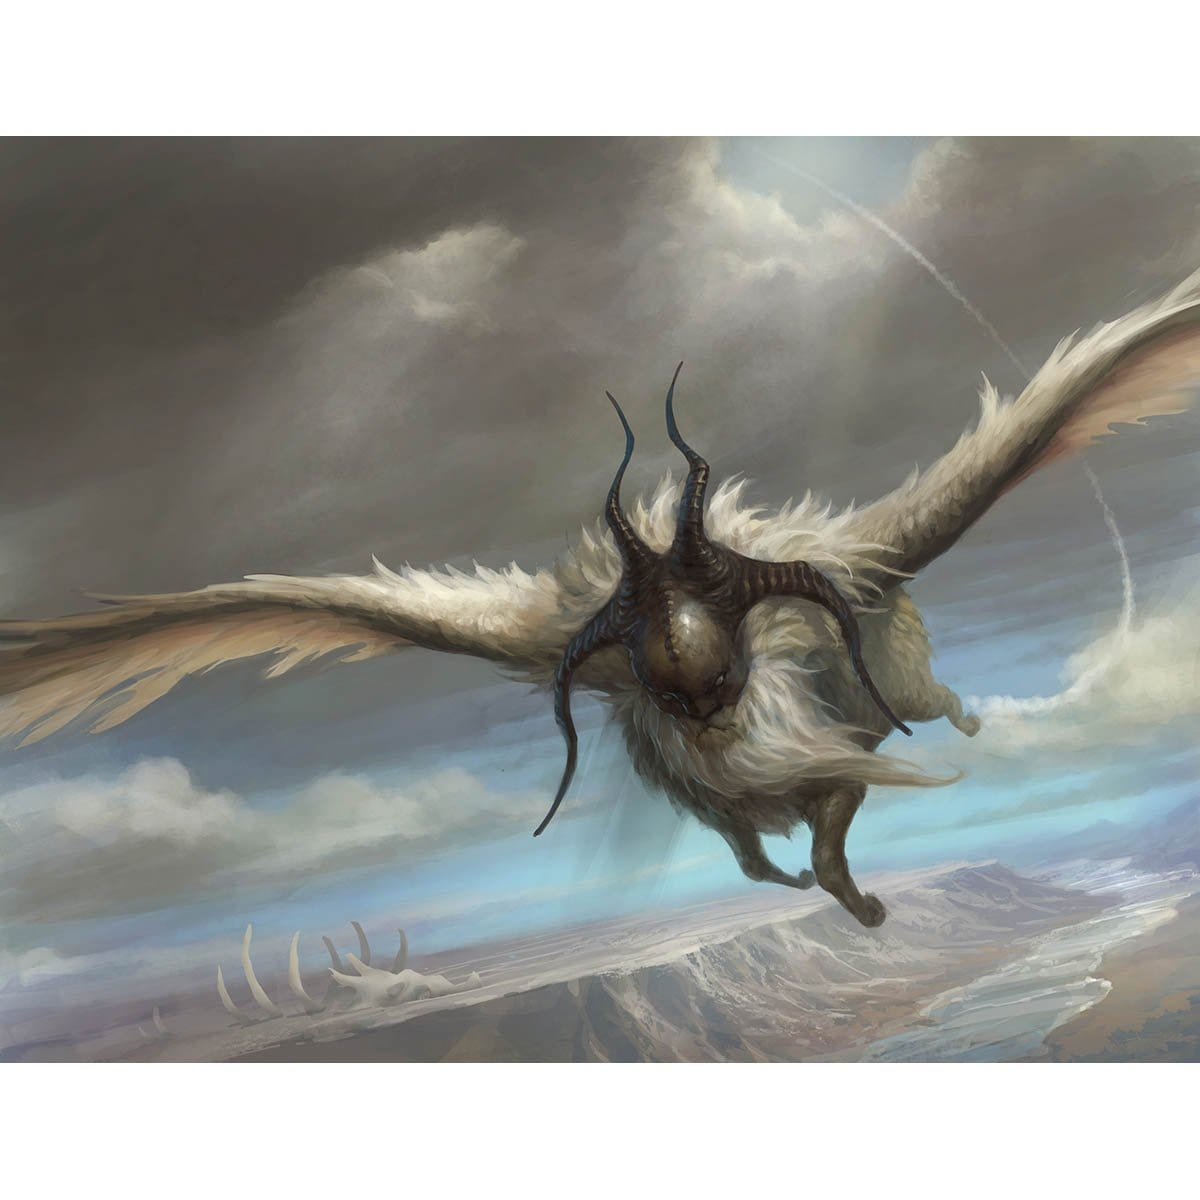 Venerable Lammasu Print - Print - Original Magic Art - Accessories for Magic the Gathering and other card games